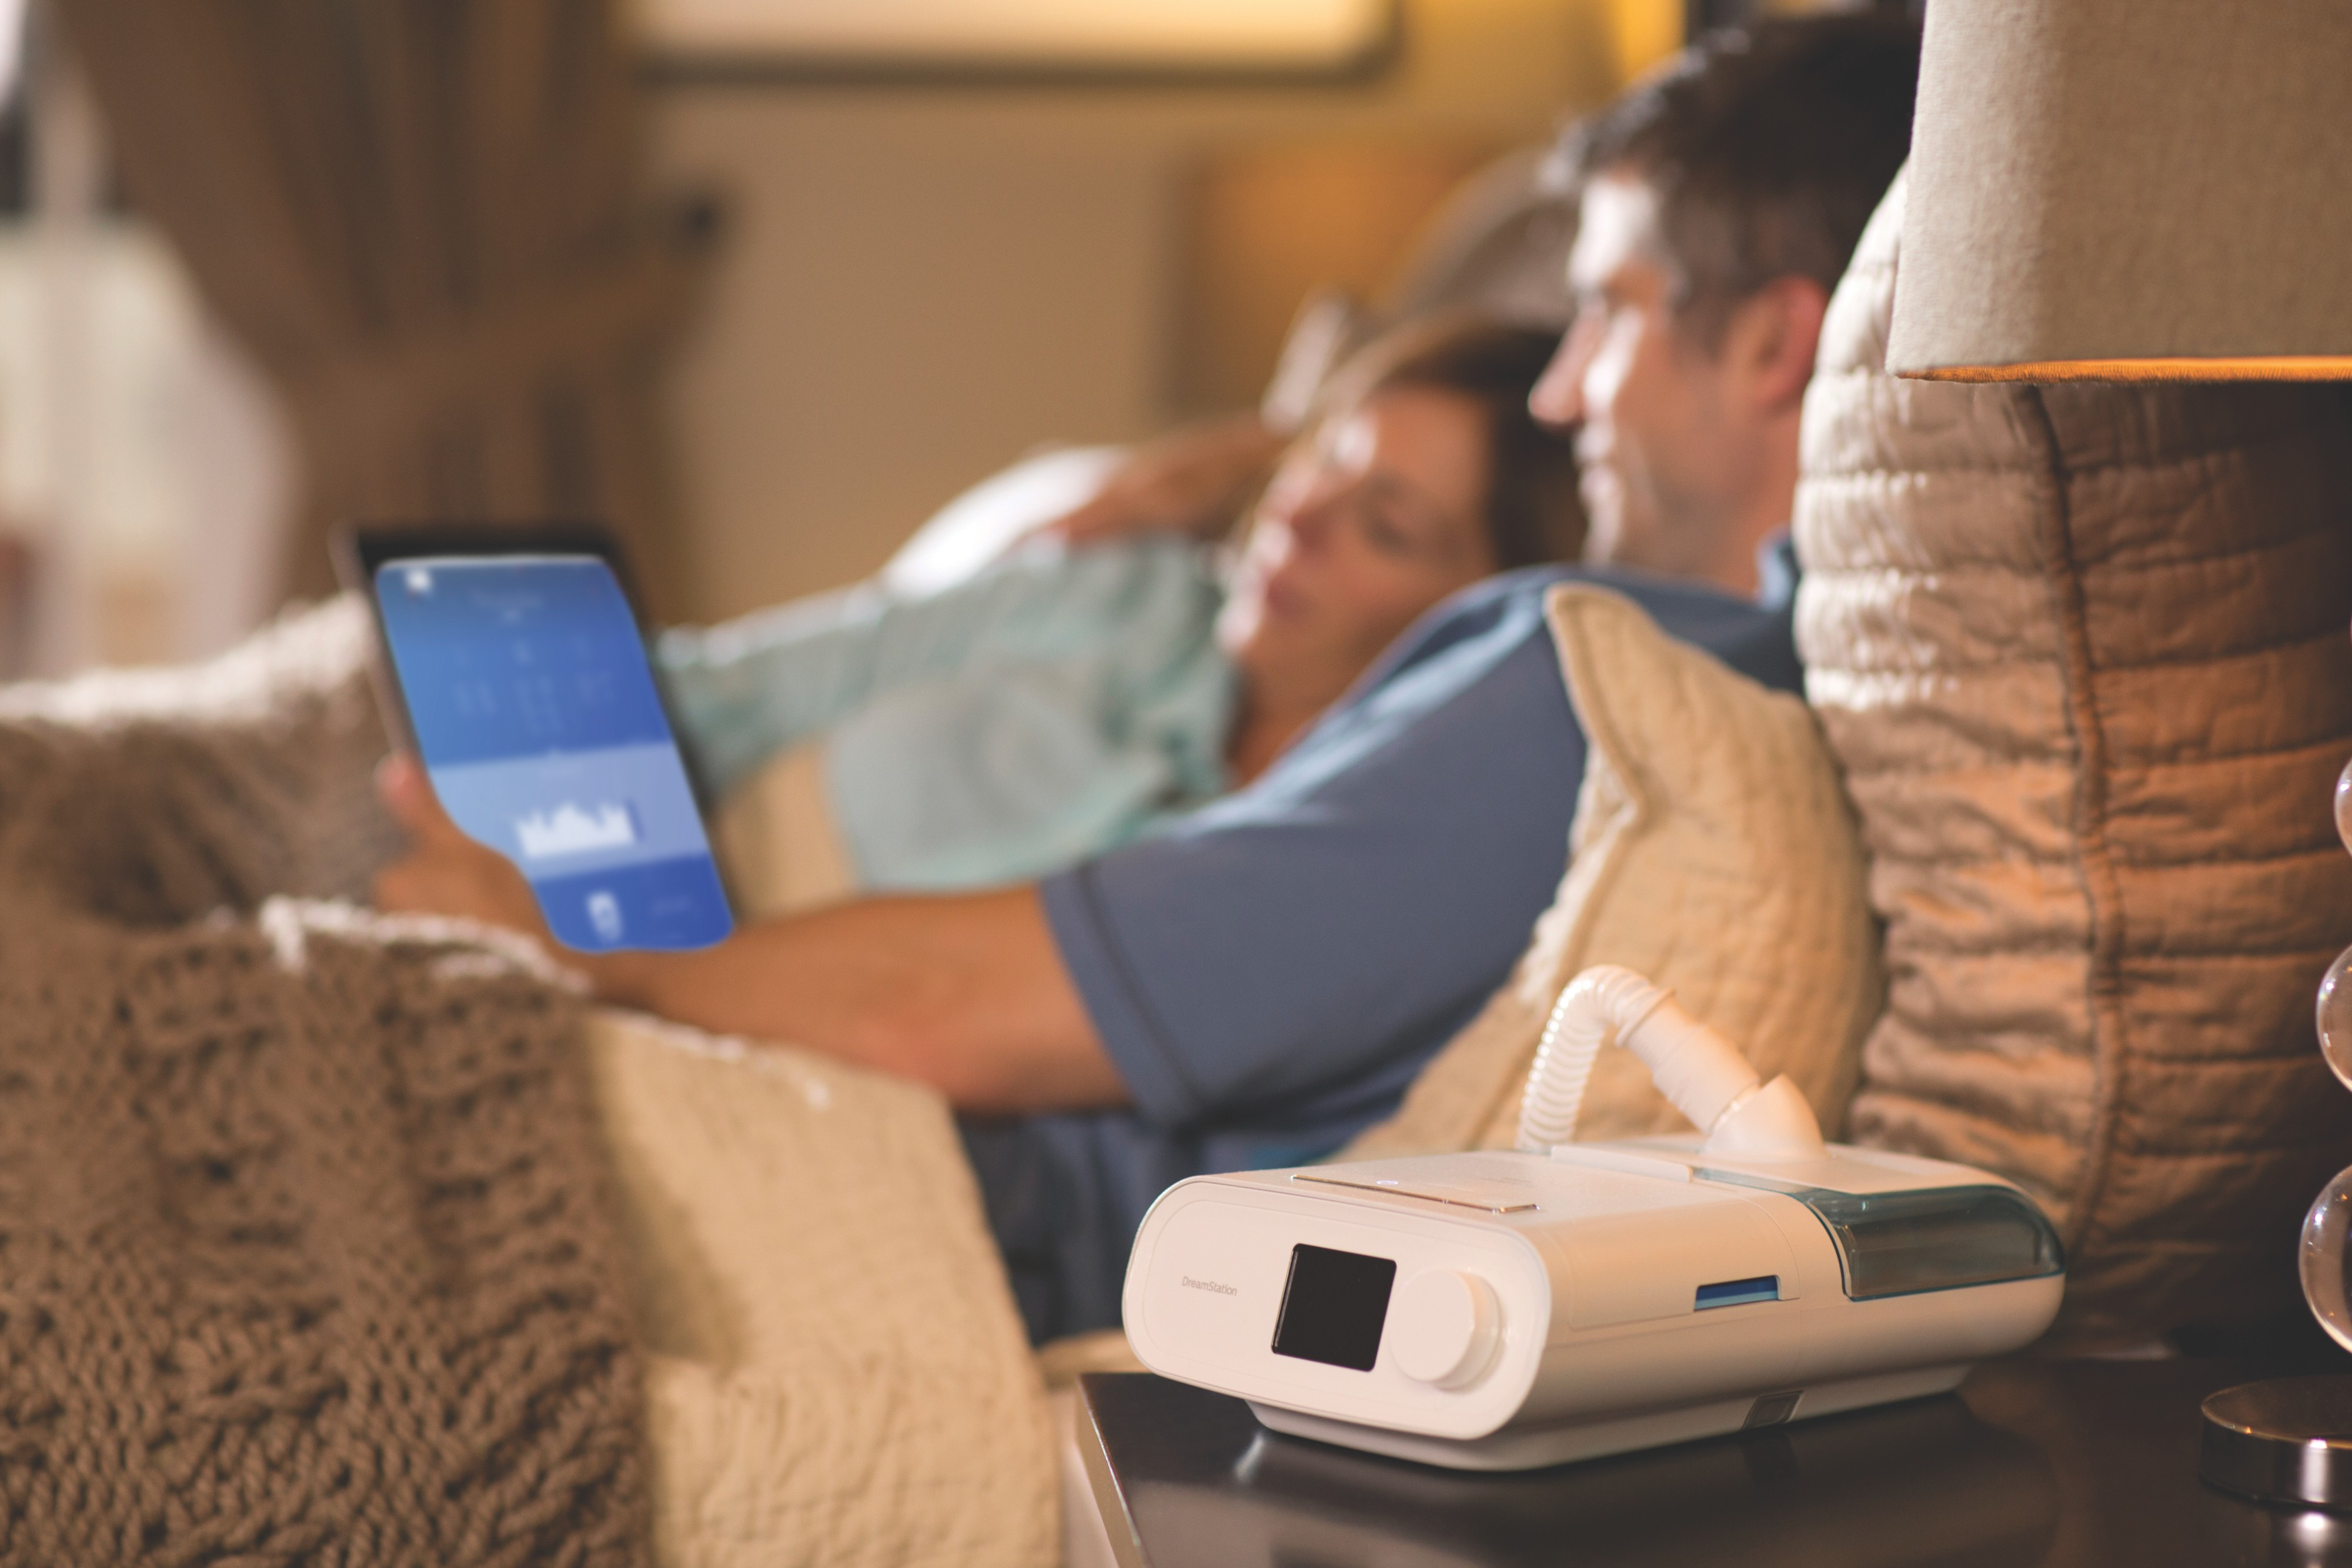 Philips Respironics DreamStation Pro CPAP